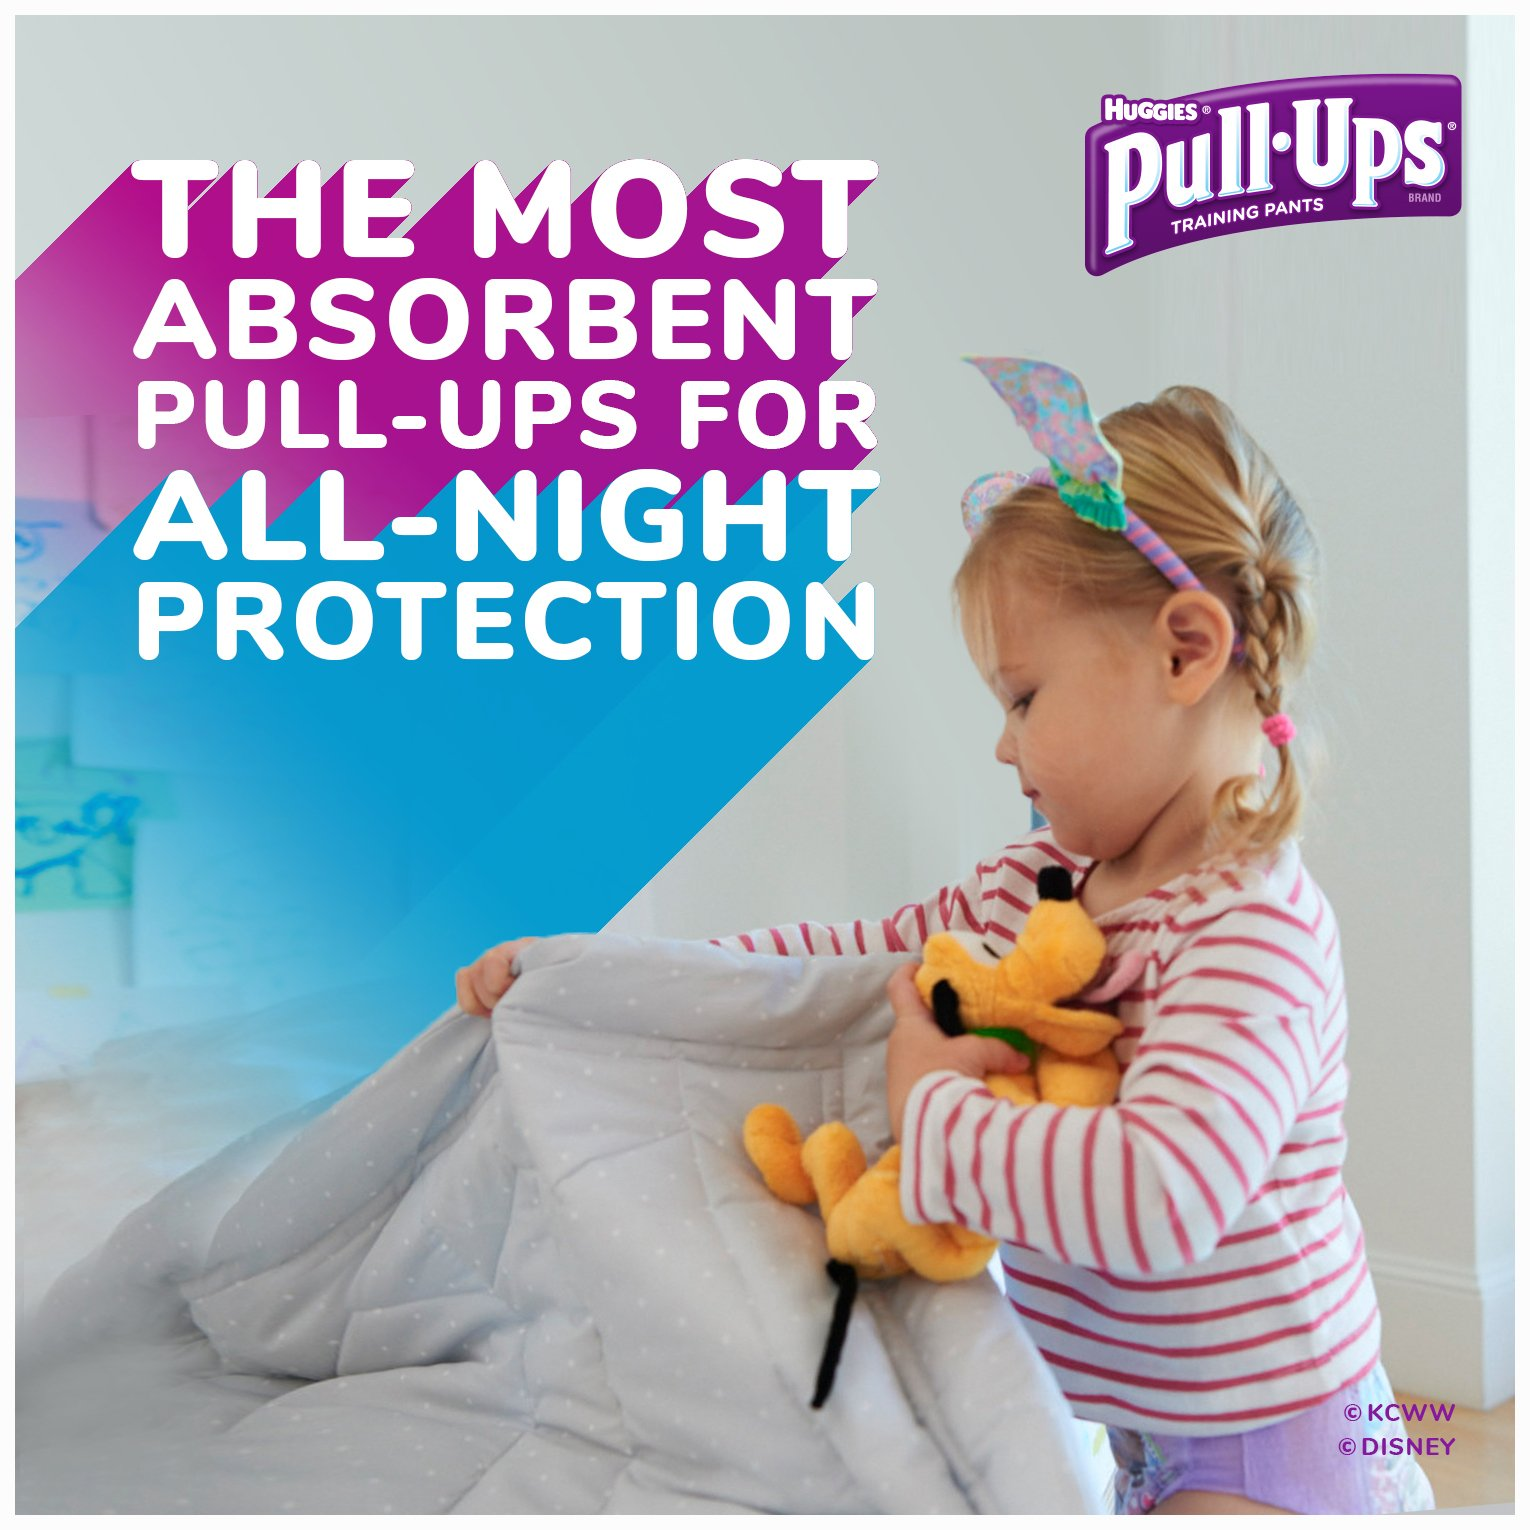 Pull-Ups Night-Time Potty Training Pants for Girls, 3T-4T (32-40 lb.), 20 Ct. (Packaging May Vary) (Pack of 4) by Huggies (Image #6)